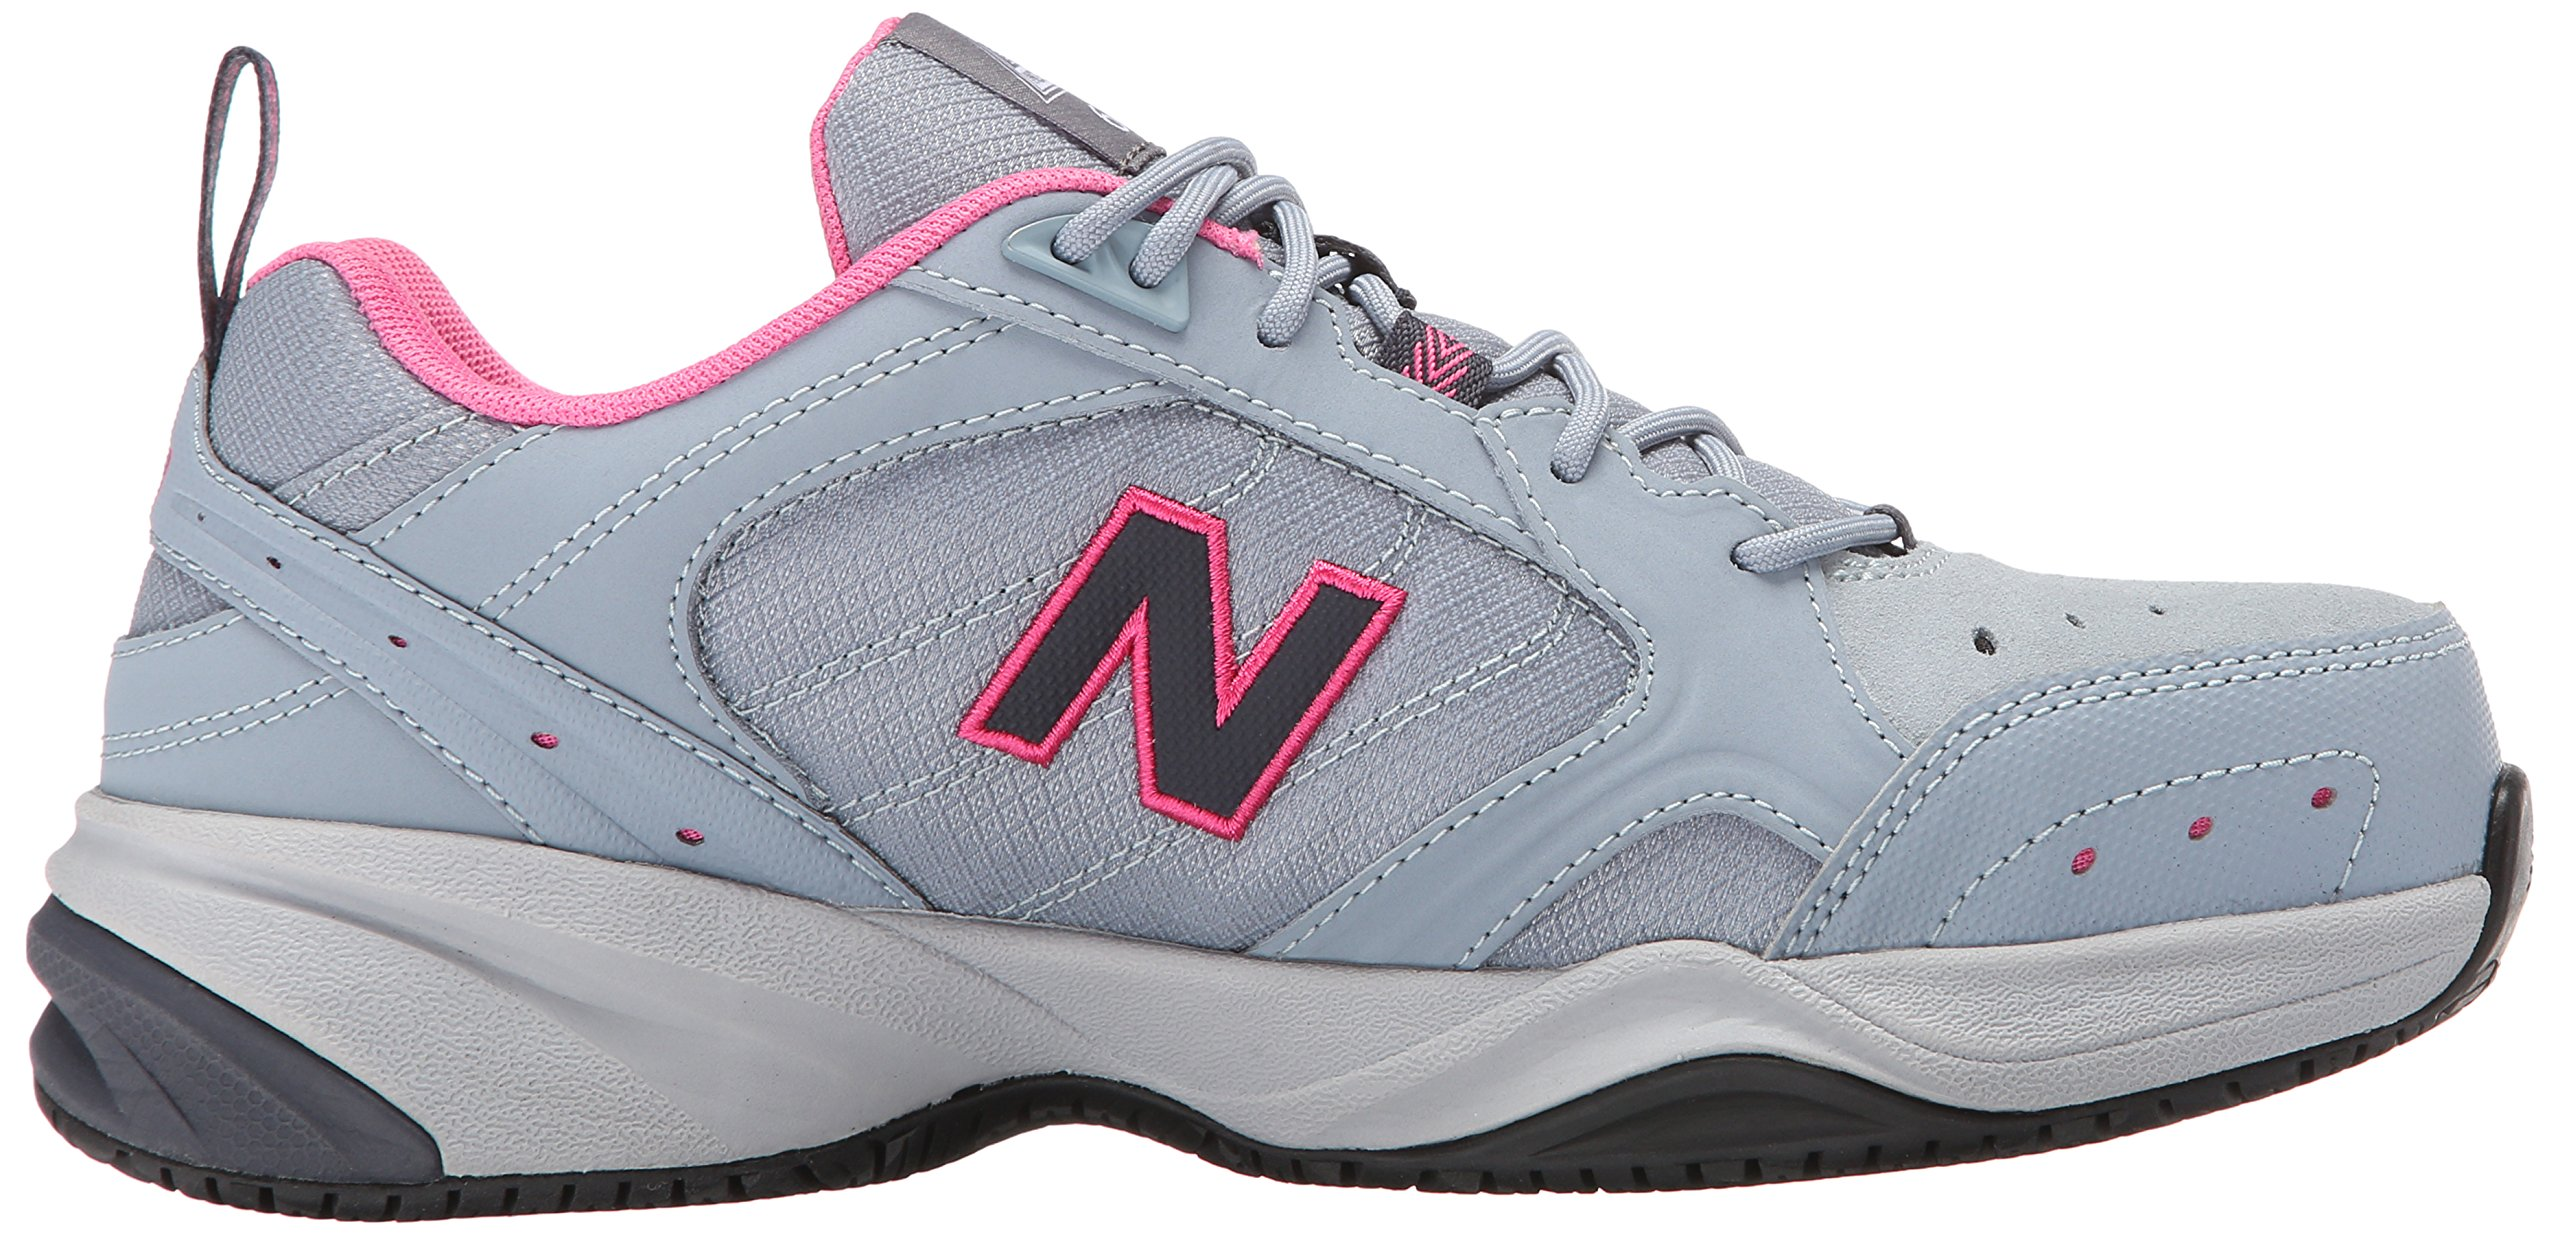 New Balance Women's WID627V1 Steel Toe Training Work Shoe,Light Grey/Pink,8 B US by New Balance (Image #7)